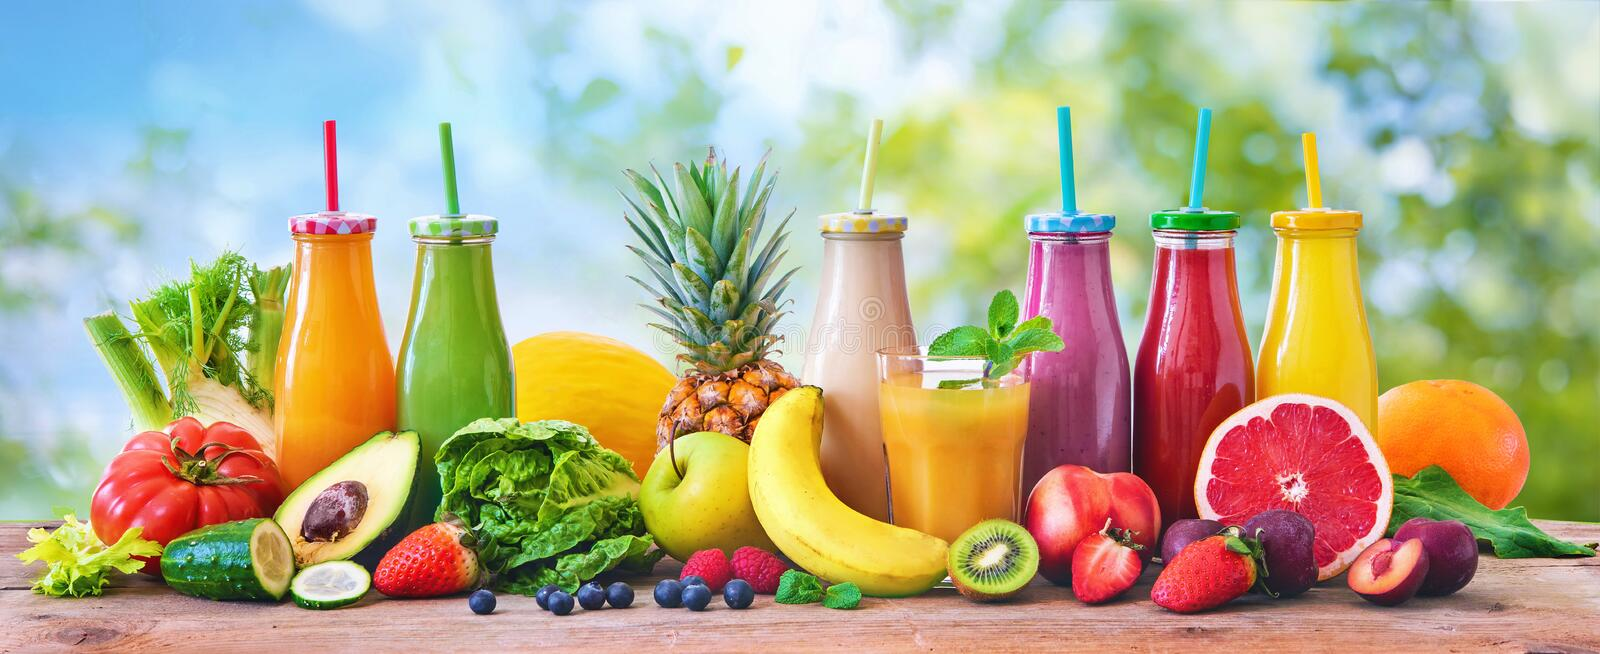 Colorful freshly squeezed fruits and vegetables smoothies with ingredients for healthy eating royalty free stock photography